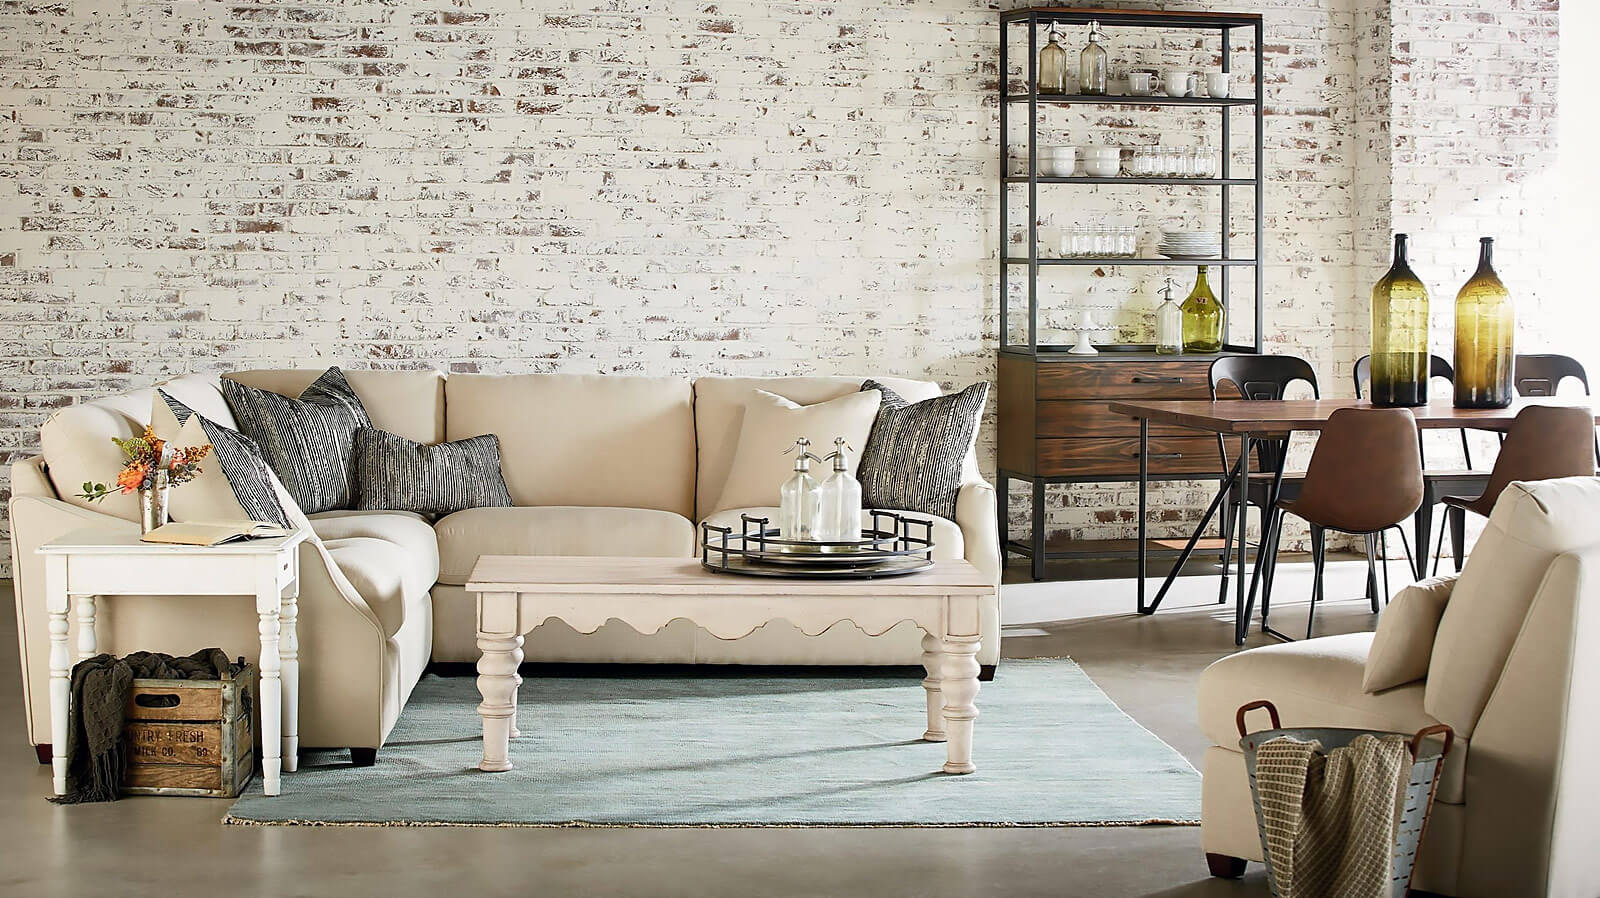 Knoxville Wholesale Furniture regarding 10 Smart Ways How to Make Wholesale Living Room Sets